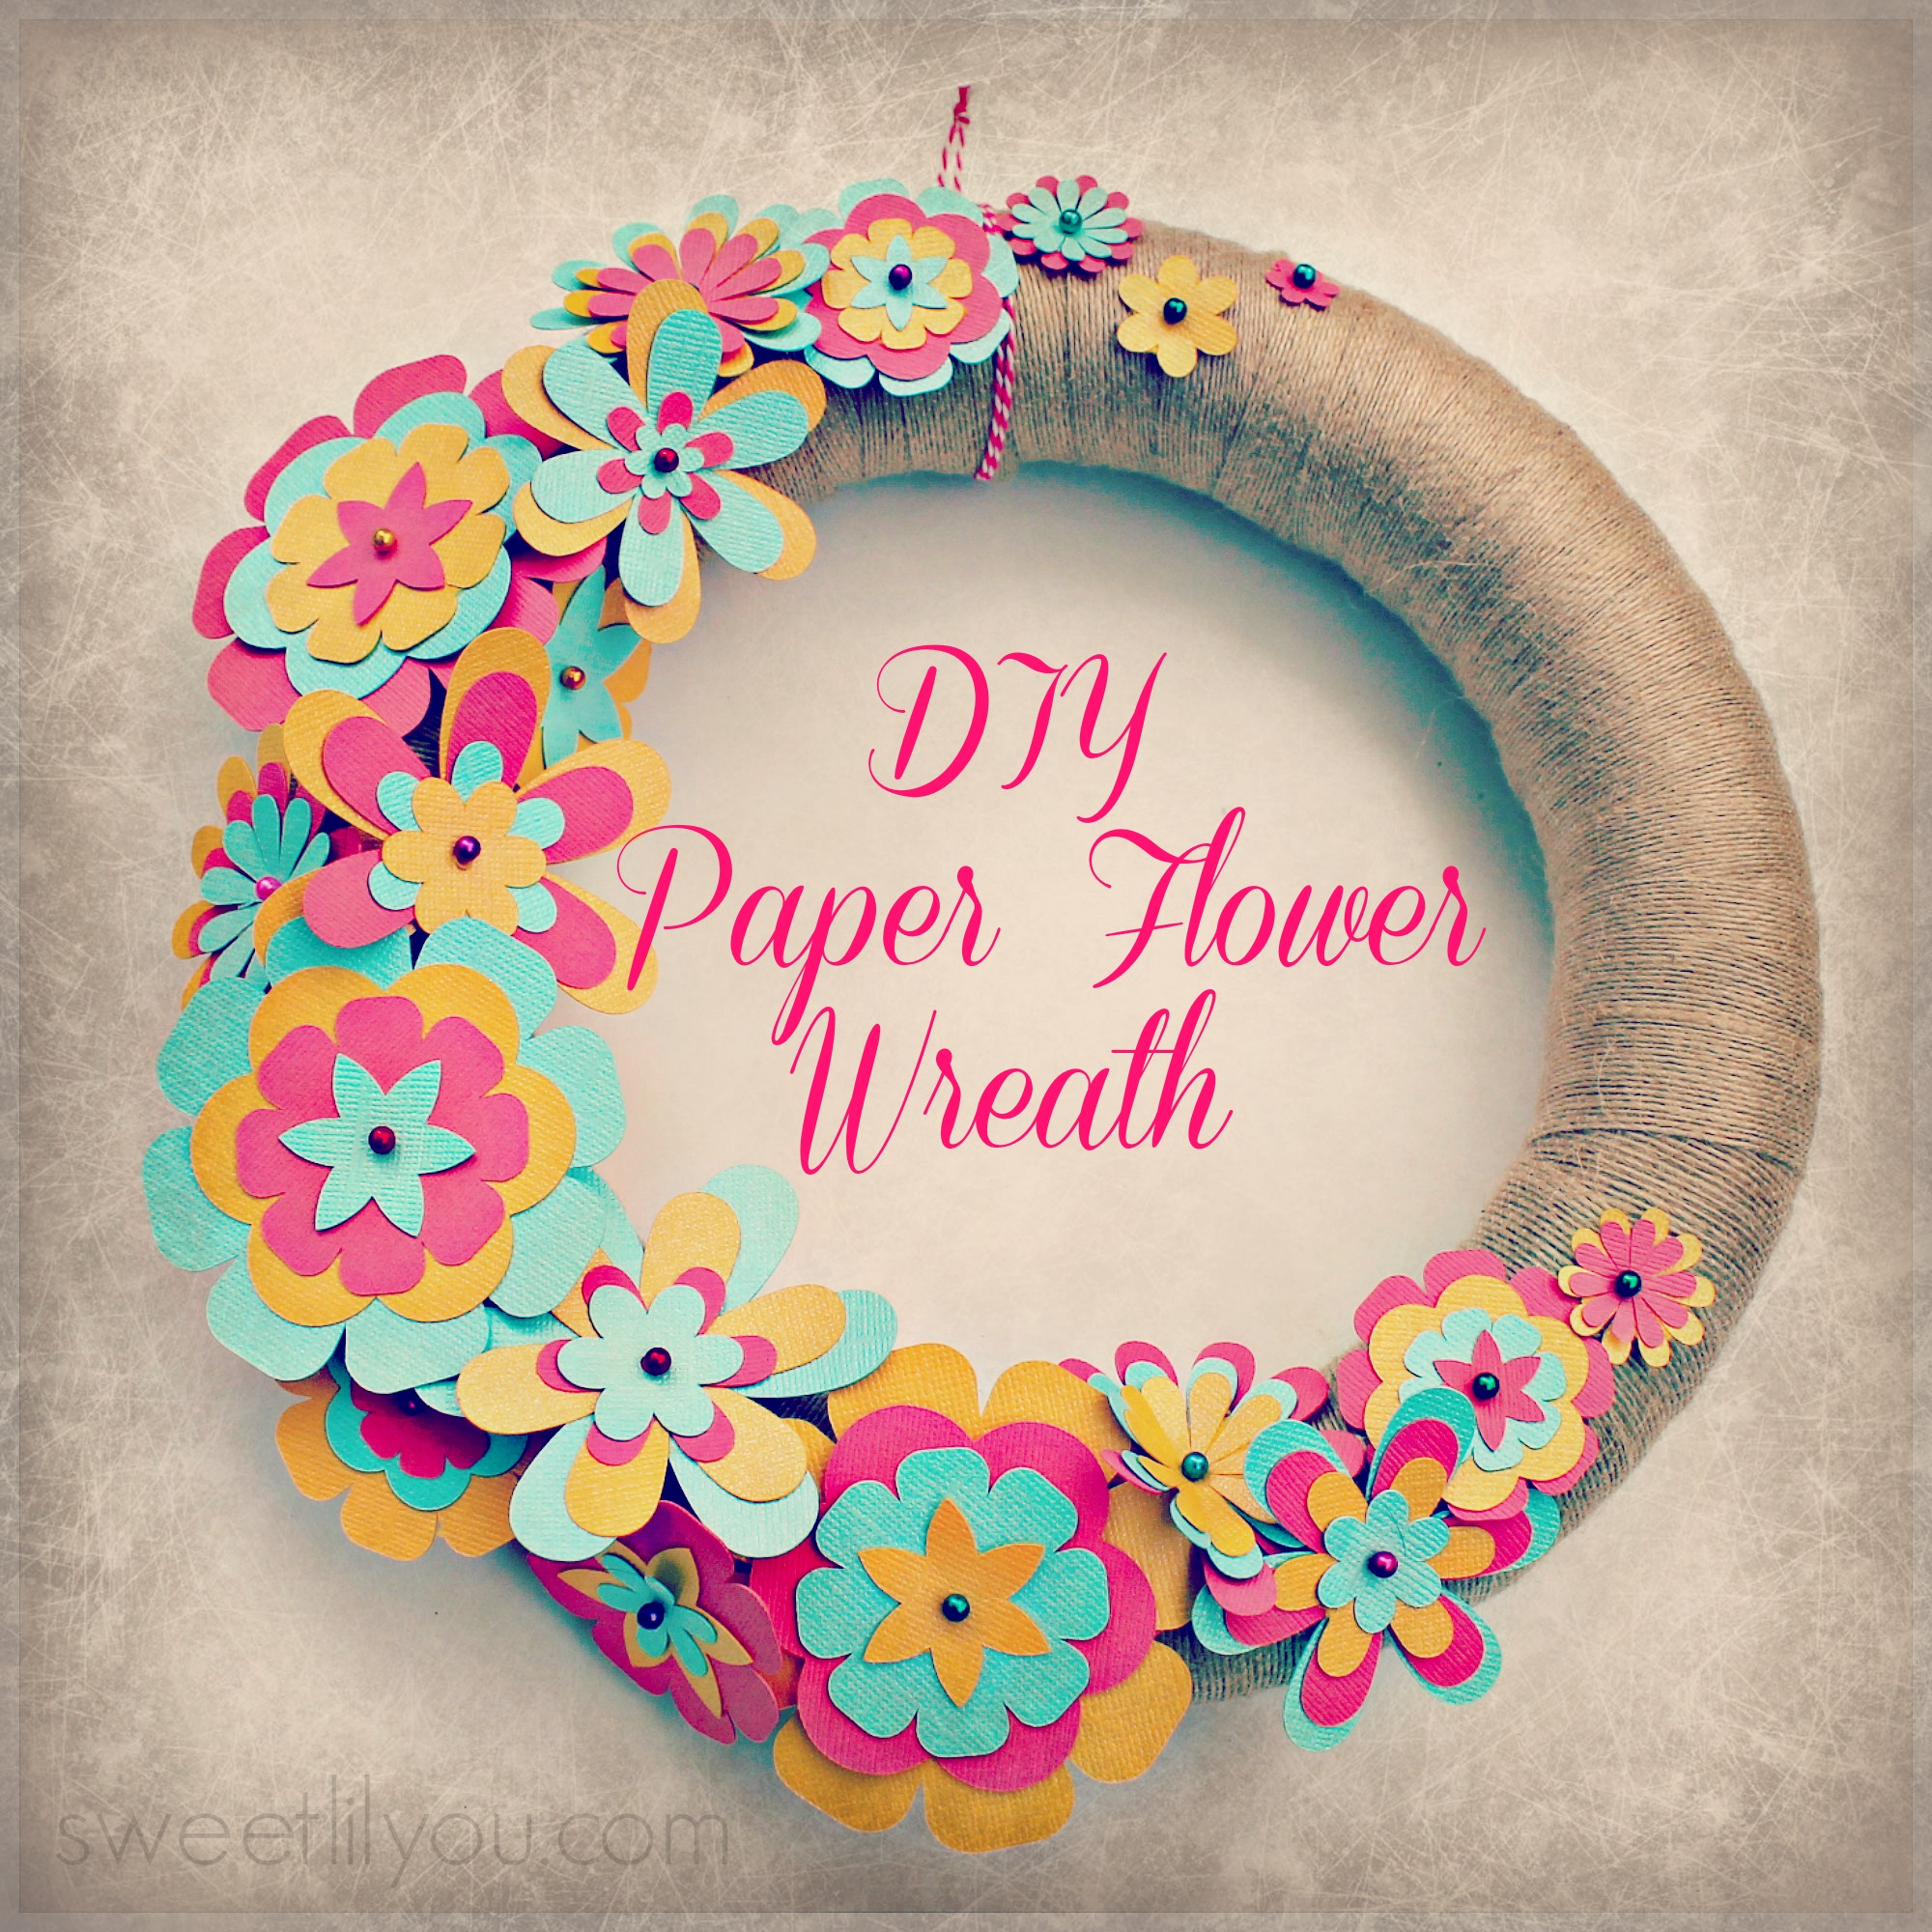 Easy diy paper flower wreath sweet lil you for How to make simple crafts at home